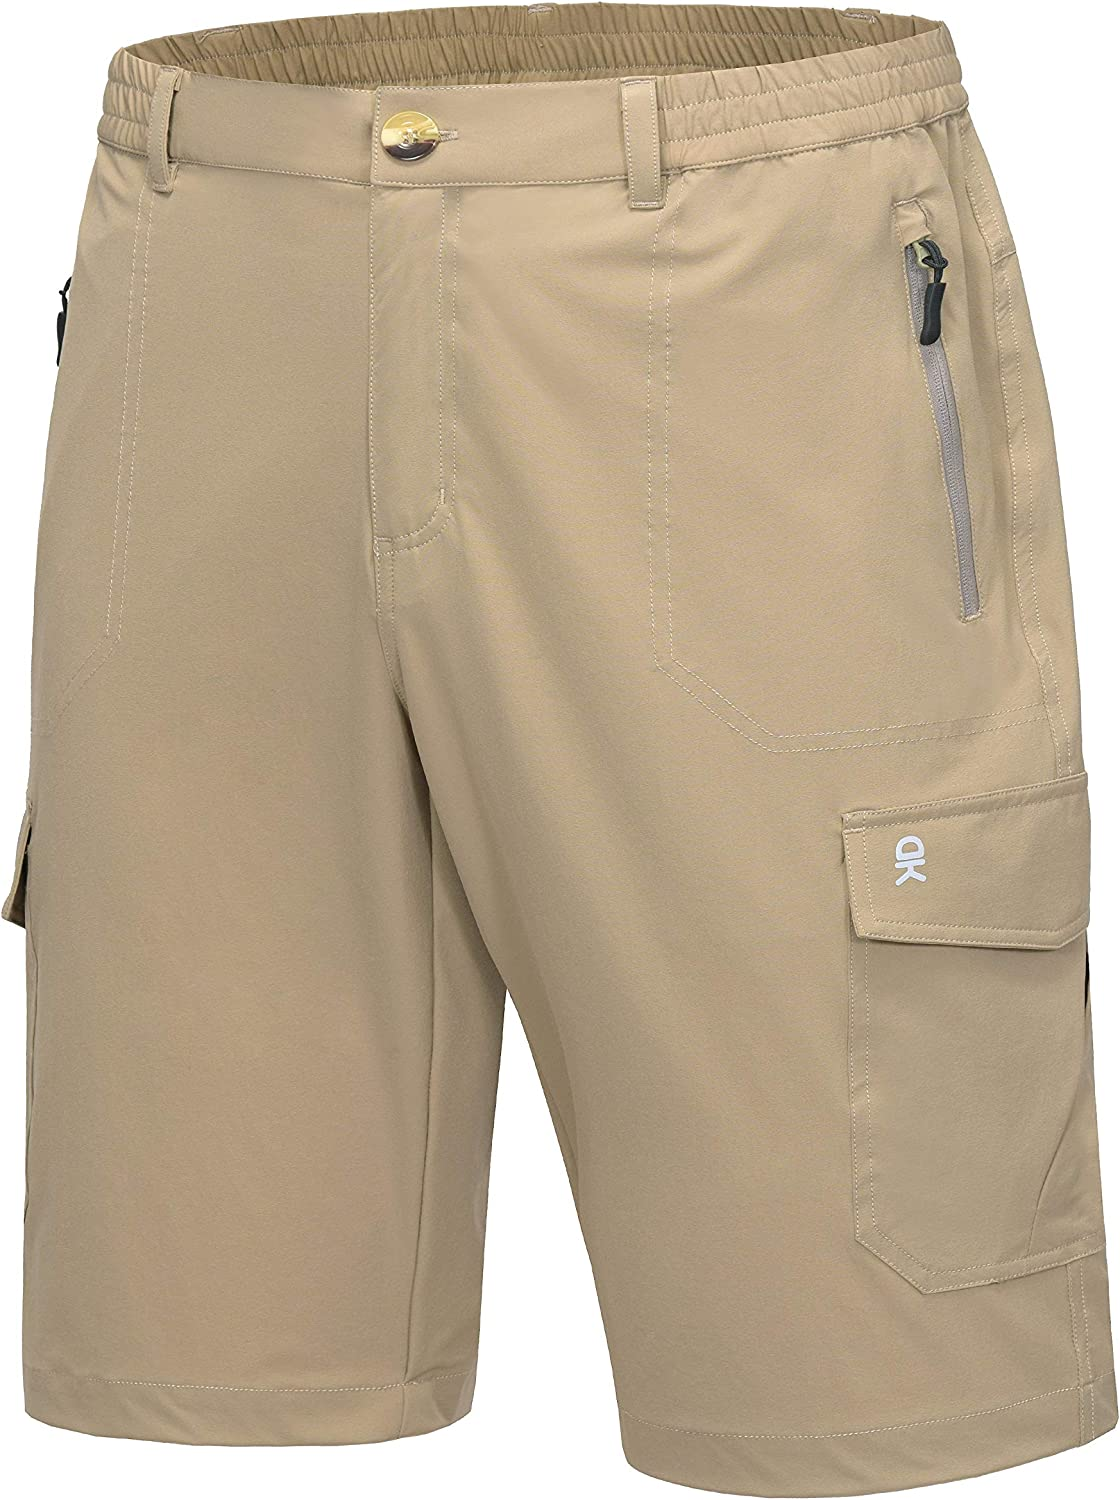 Little Outlet SALE Donkey Andy Men's 11 Inch Dry Cargo Bermuda Max 67% OFF Stretch Quick